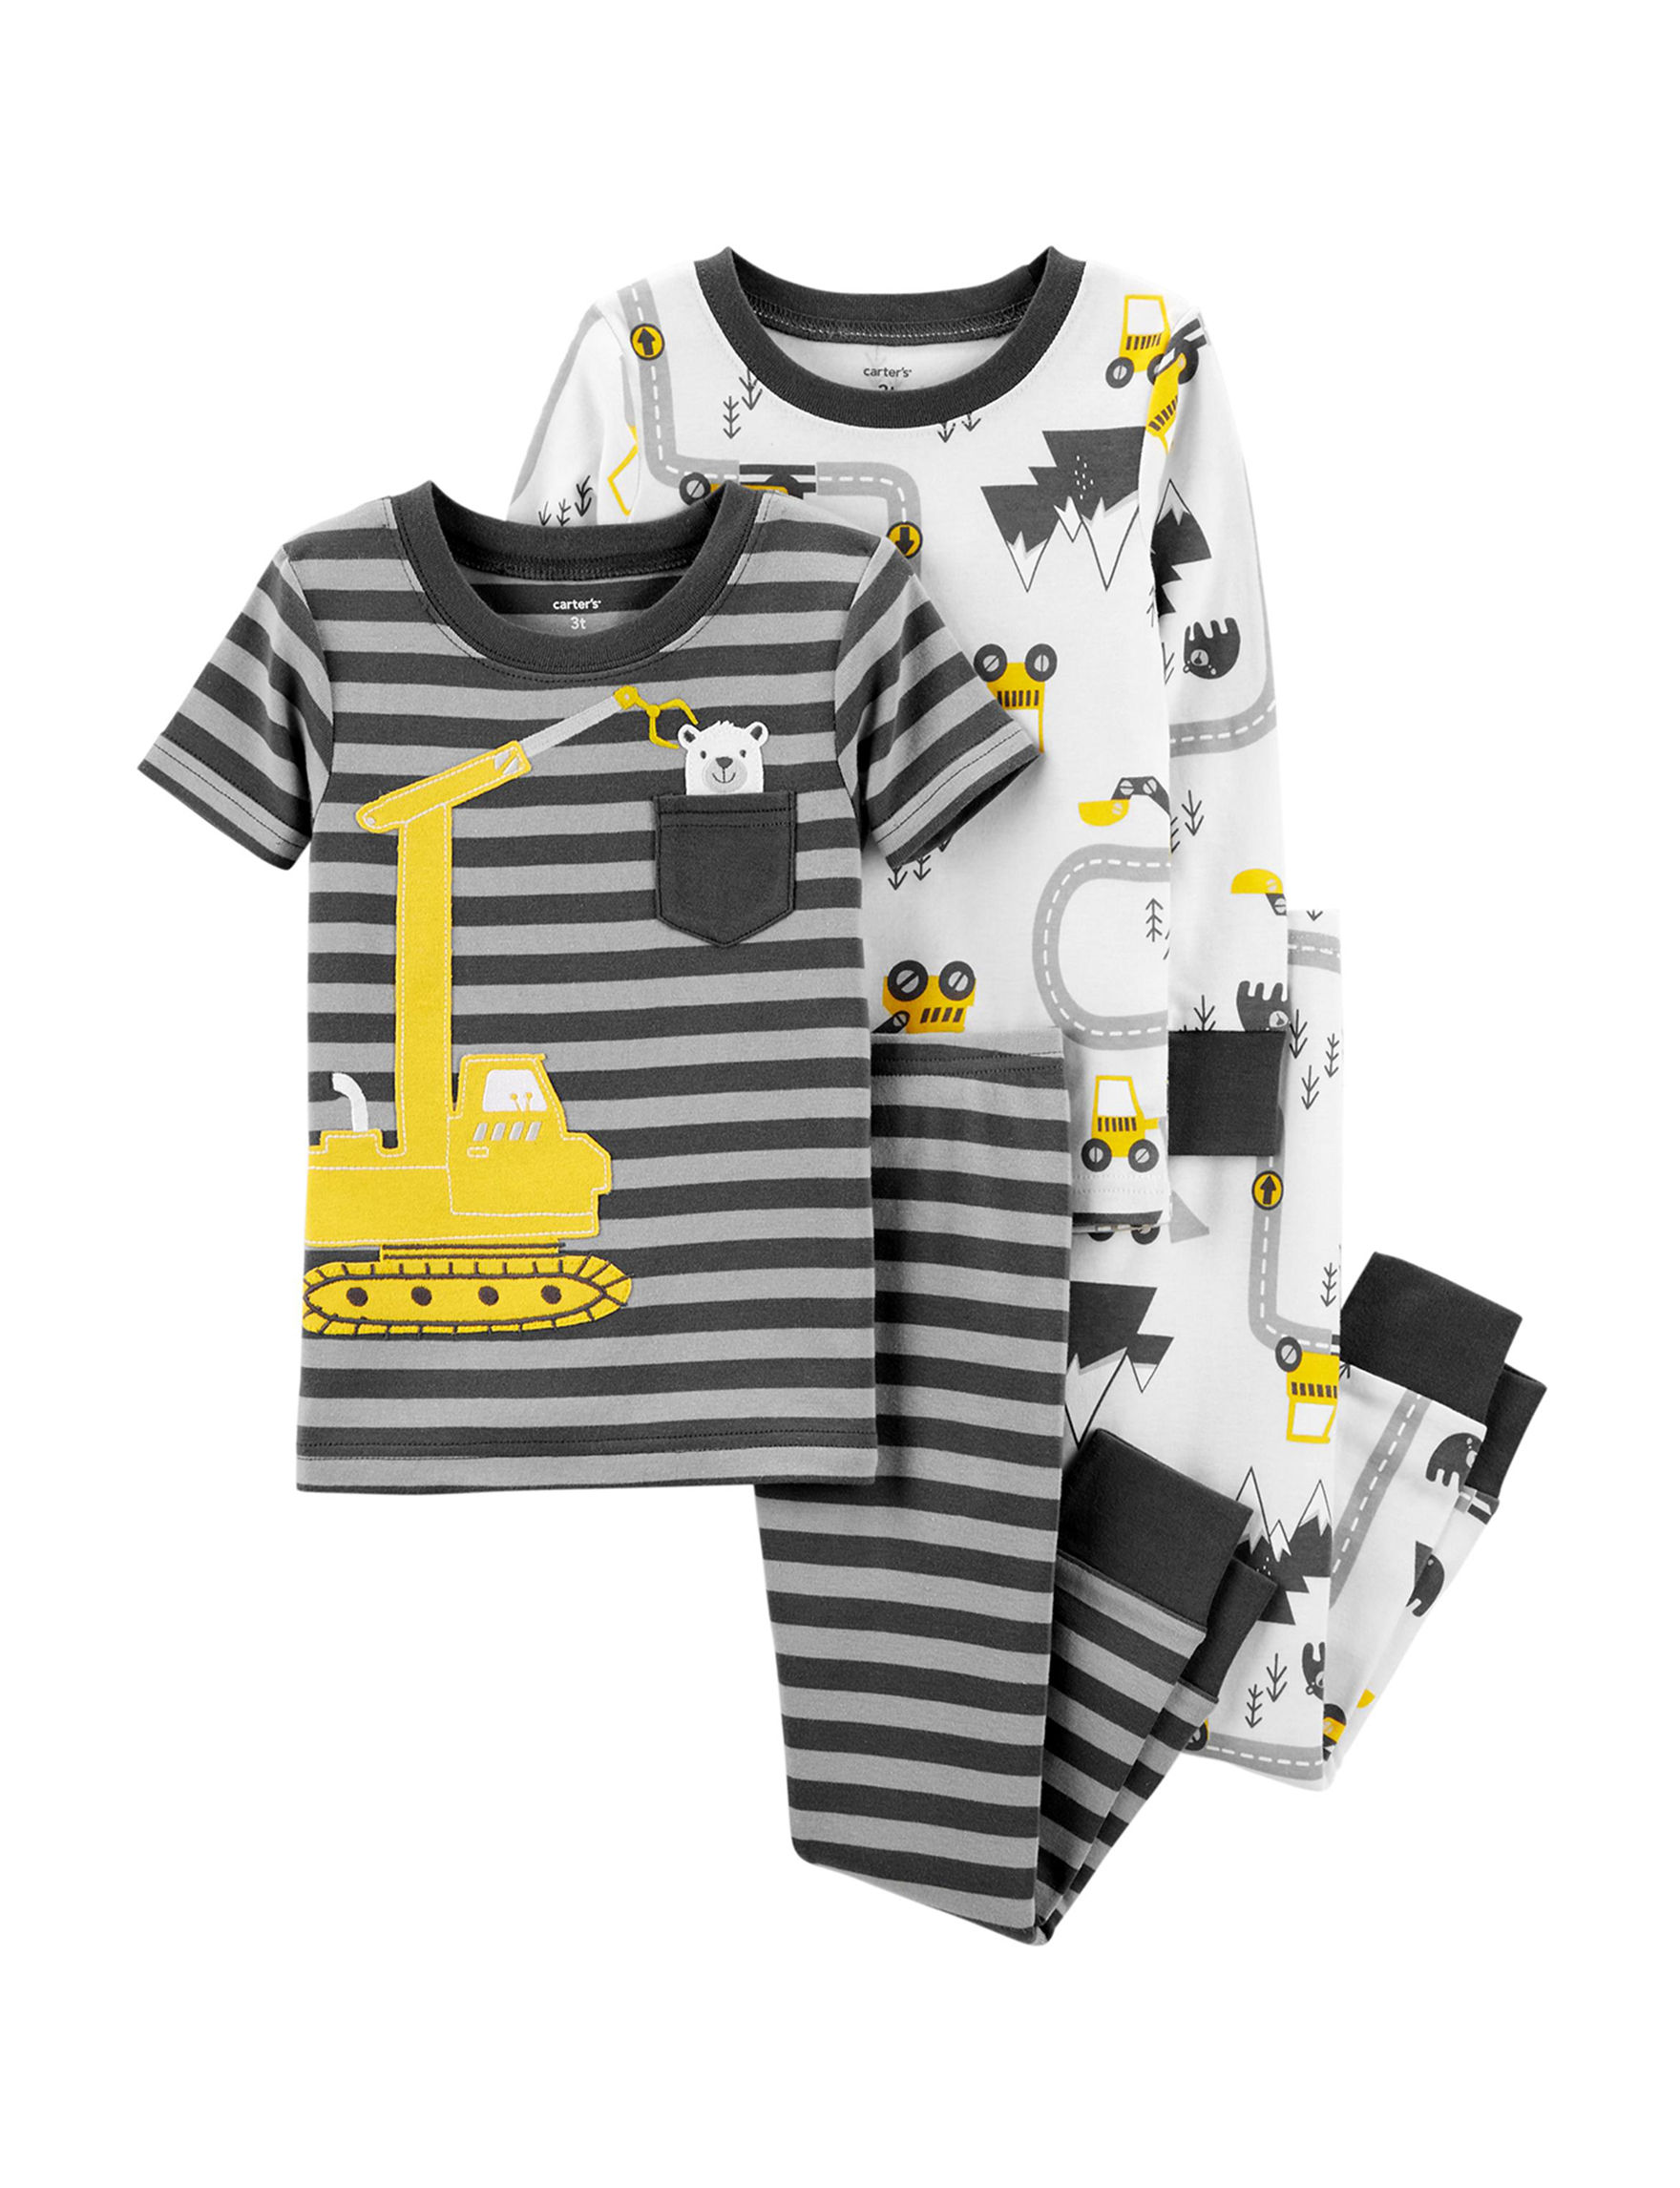 Carter's Black/White/Yellow Pajama Sets